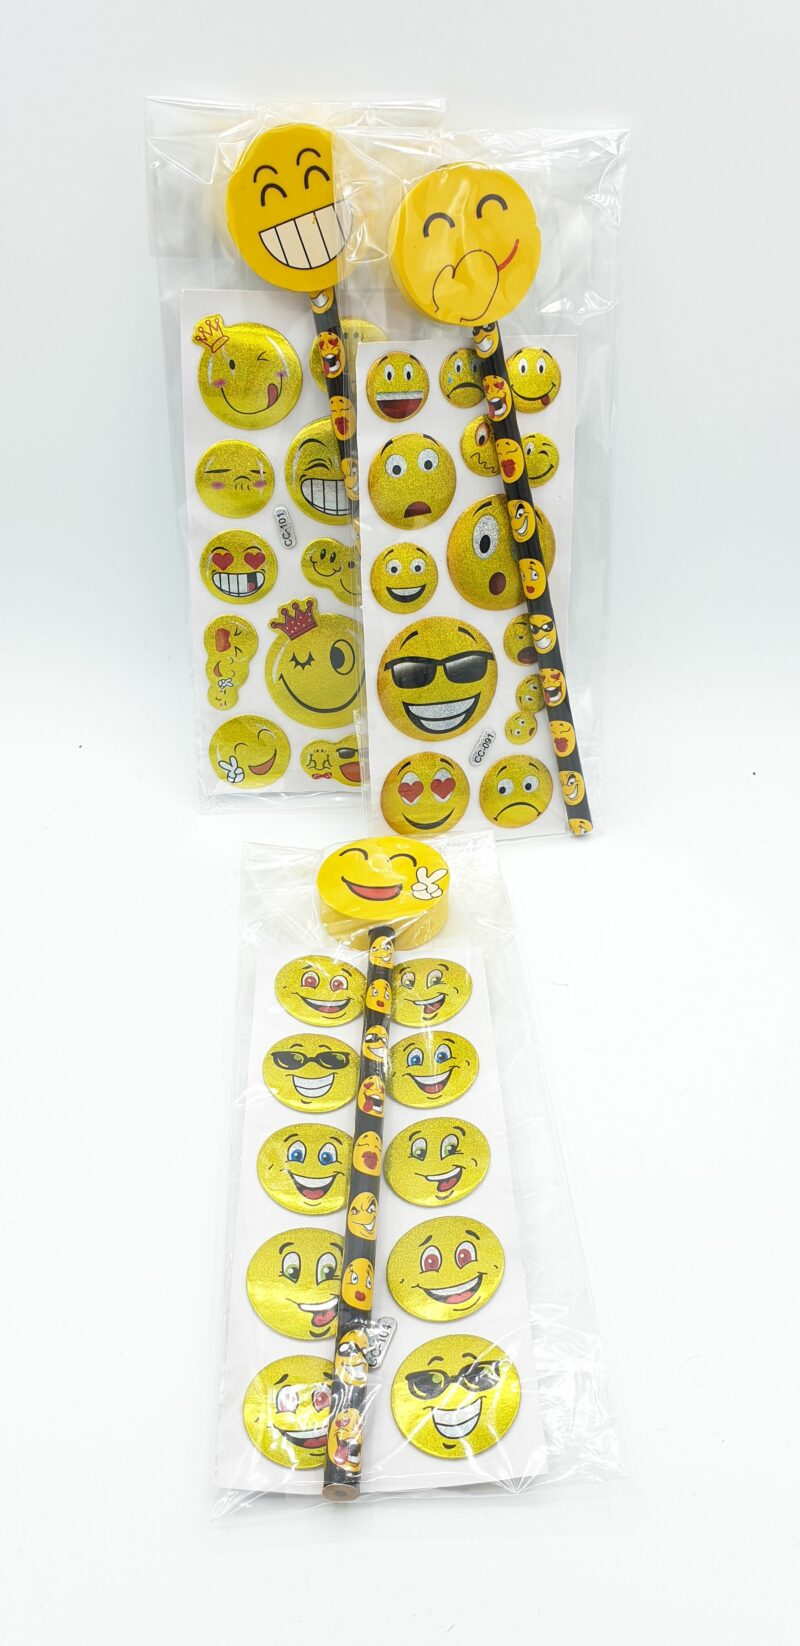 Gele Smiley traktatie